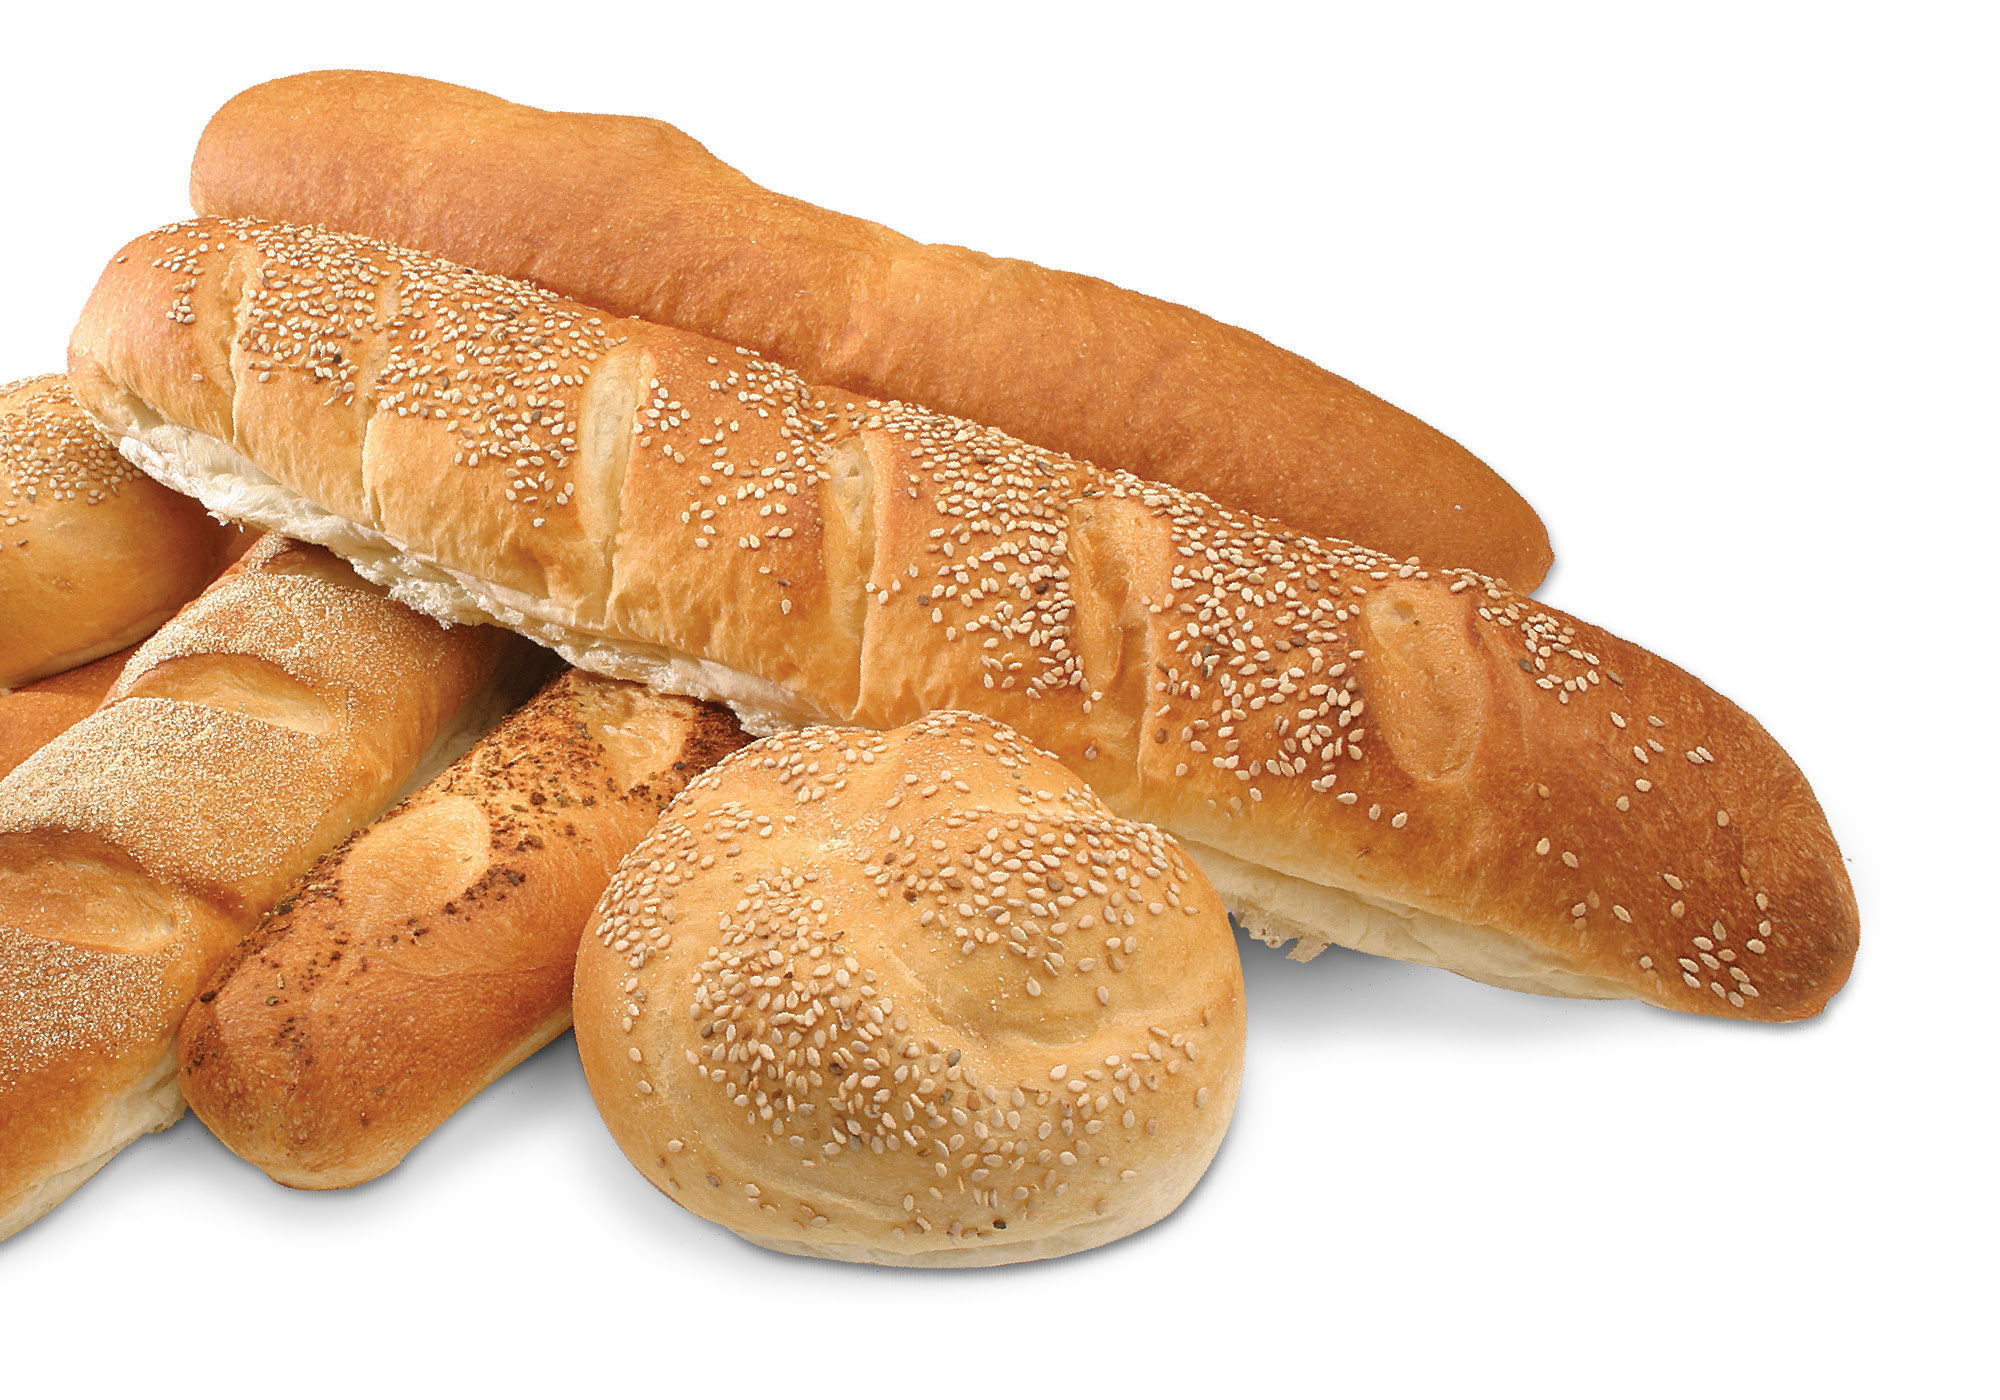 wholesale bread distributor DeIorios